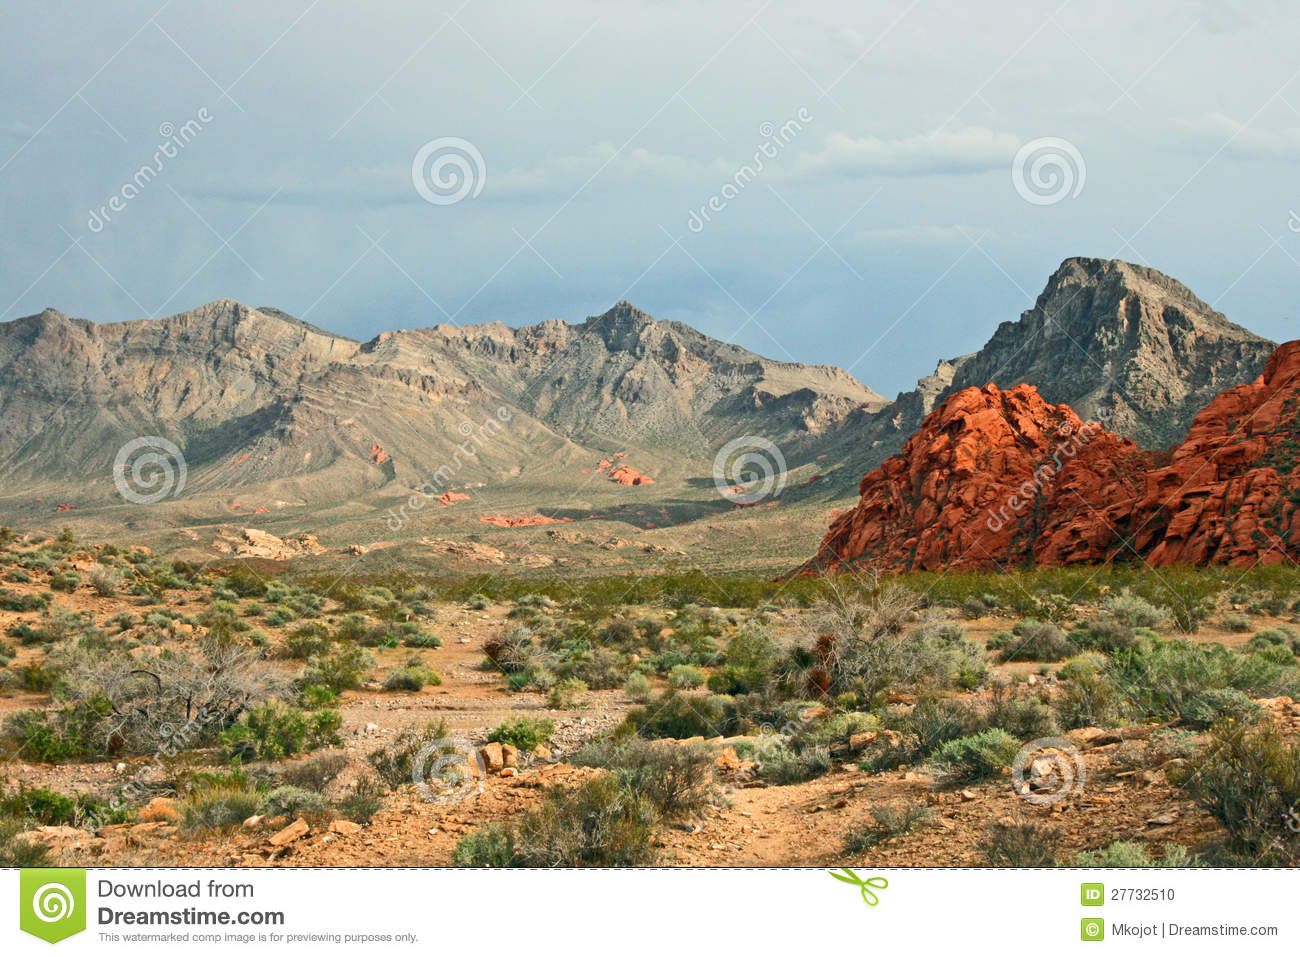 Landschaft in Nevada vor Sturm